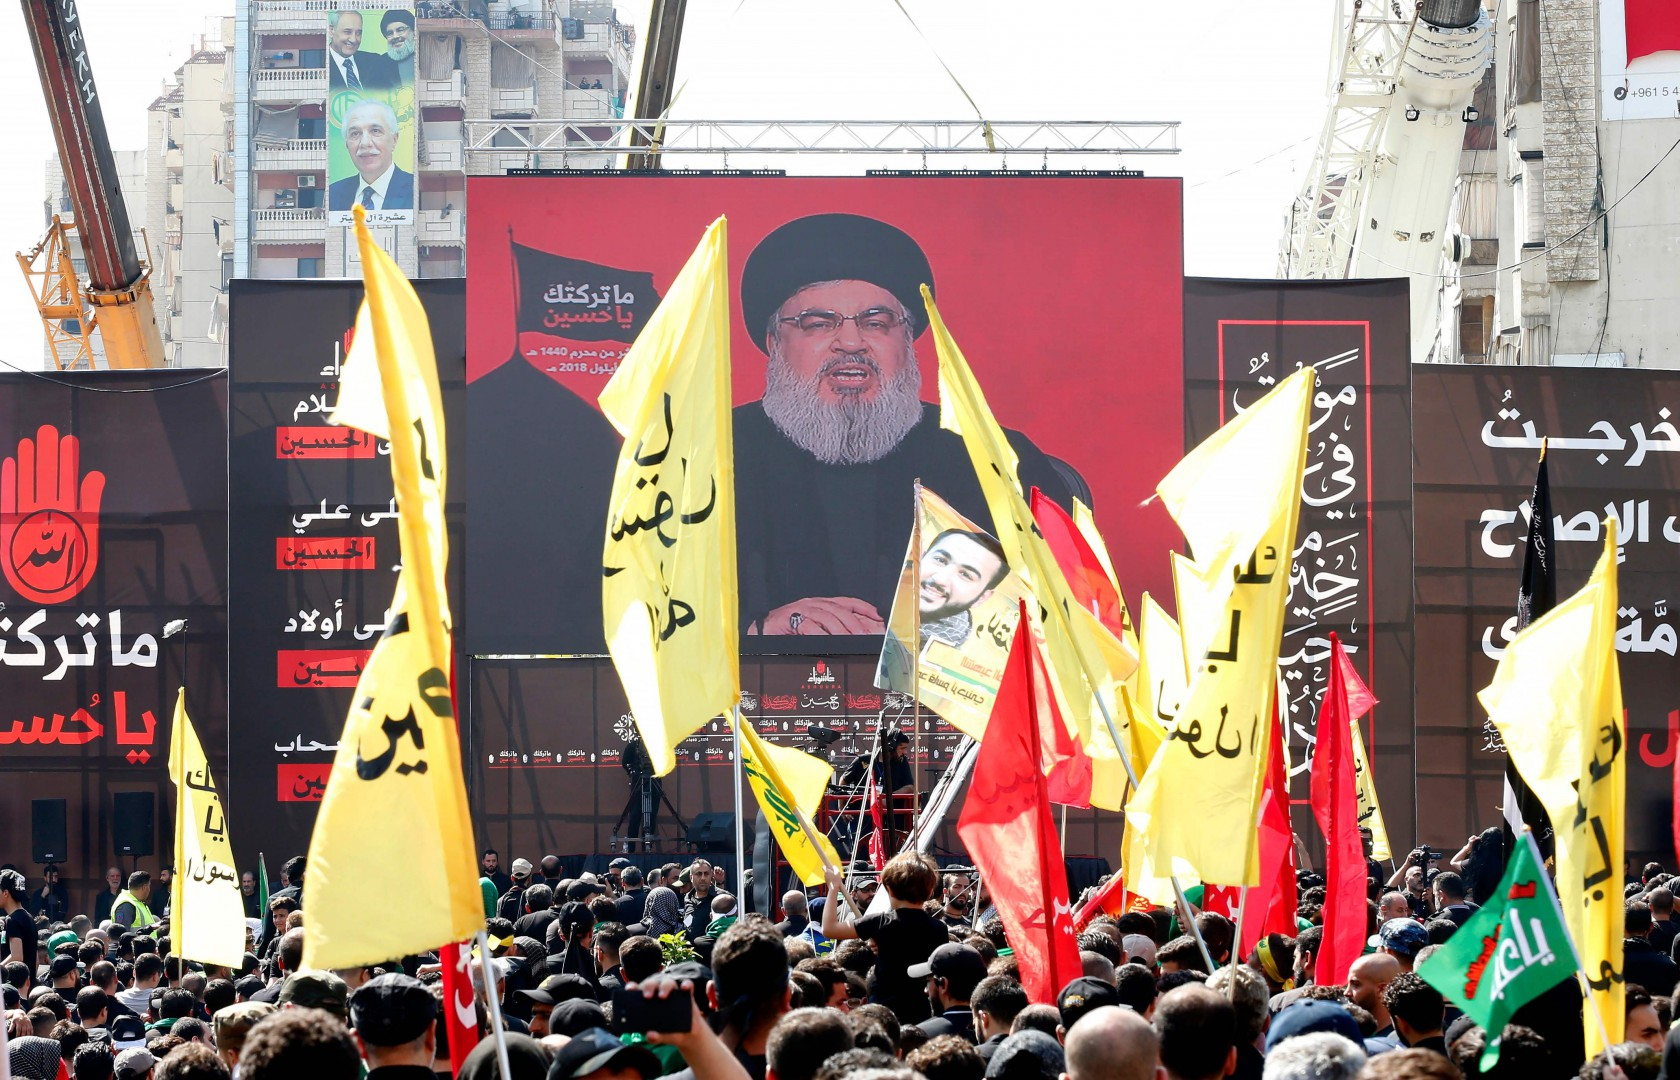 Supporters of Lebanon's Shiite movement Hezbollah gather near a giant poster of their leader Hassan Nasrallah during a ceremony to mark Ashura on September 20, 2018 in Beirut. - Ashura commemorates the death of Imam Hussein, grandson of the Muslim faith's prophet Mohammed, who was killed by the armies of his rival Yazid over the succession for the caliphate near Karbala in 680 AD. (Photo by ANWAR AMRO / AFP)